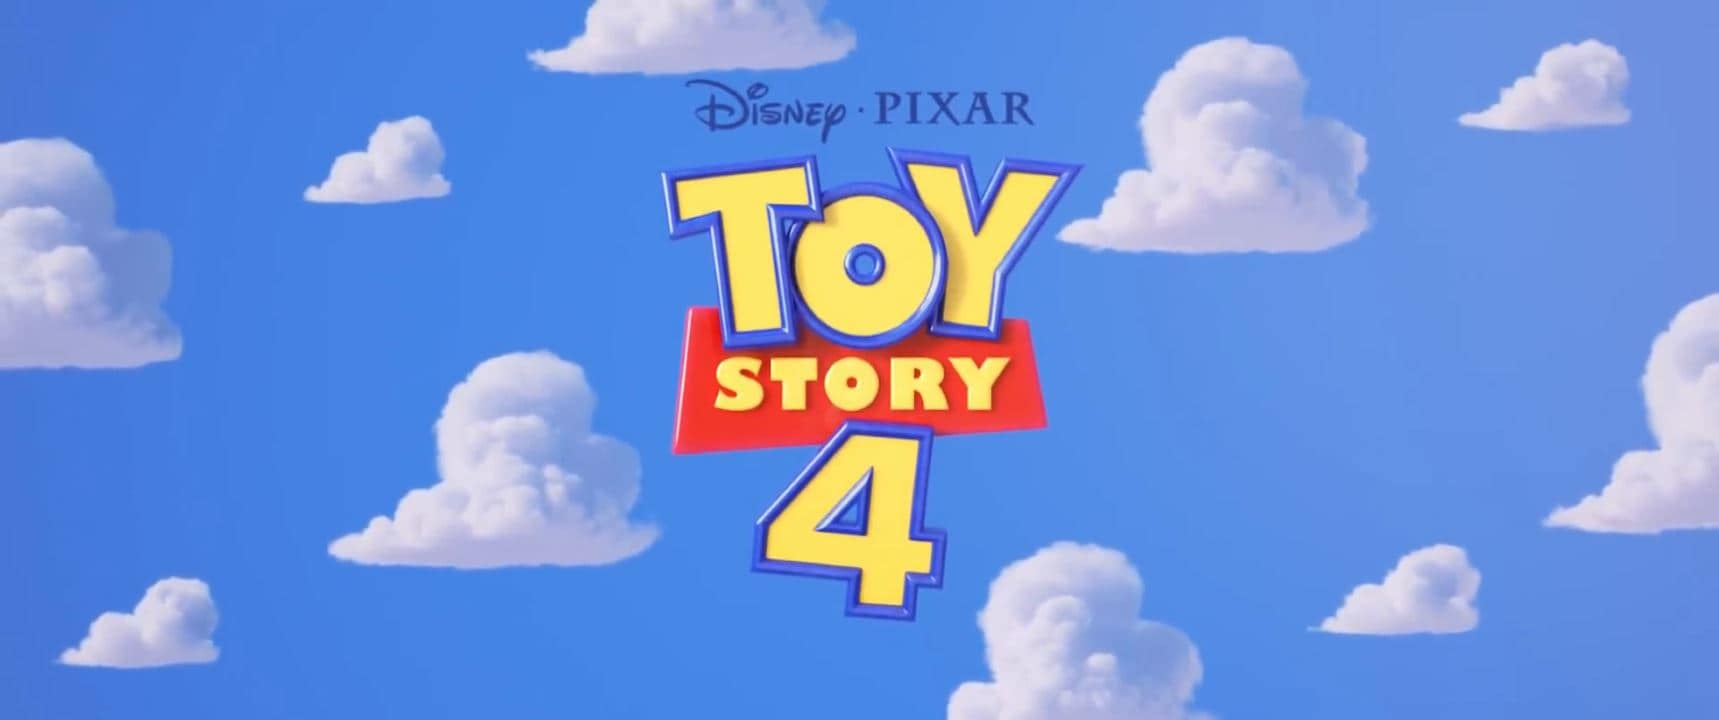 Toy Story 4 Trailer Introduces Newest Character, Forky